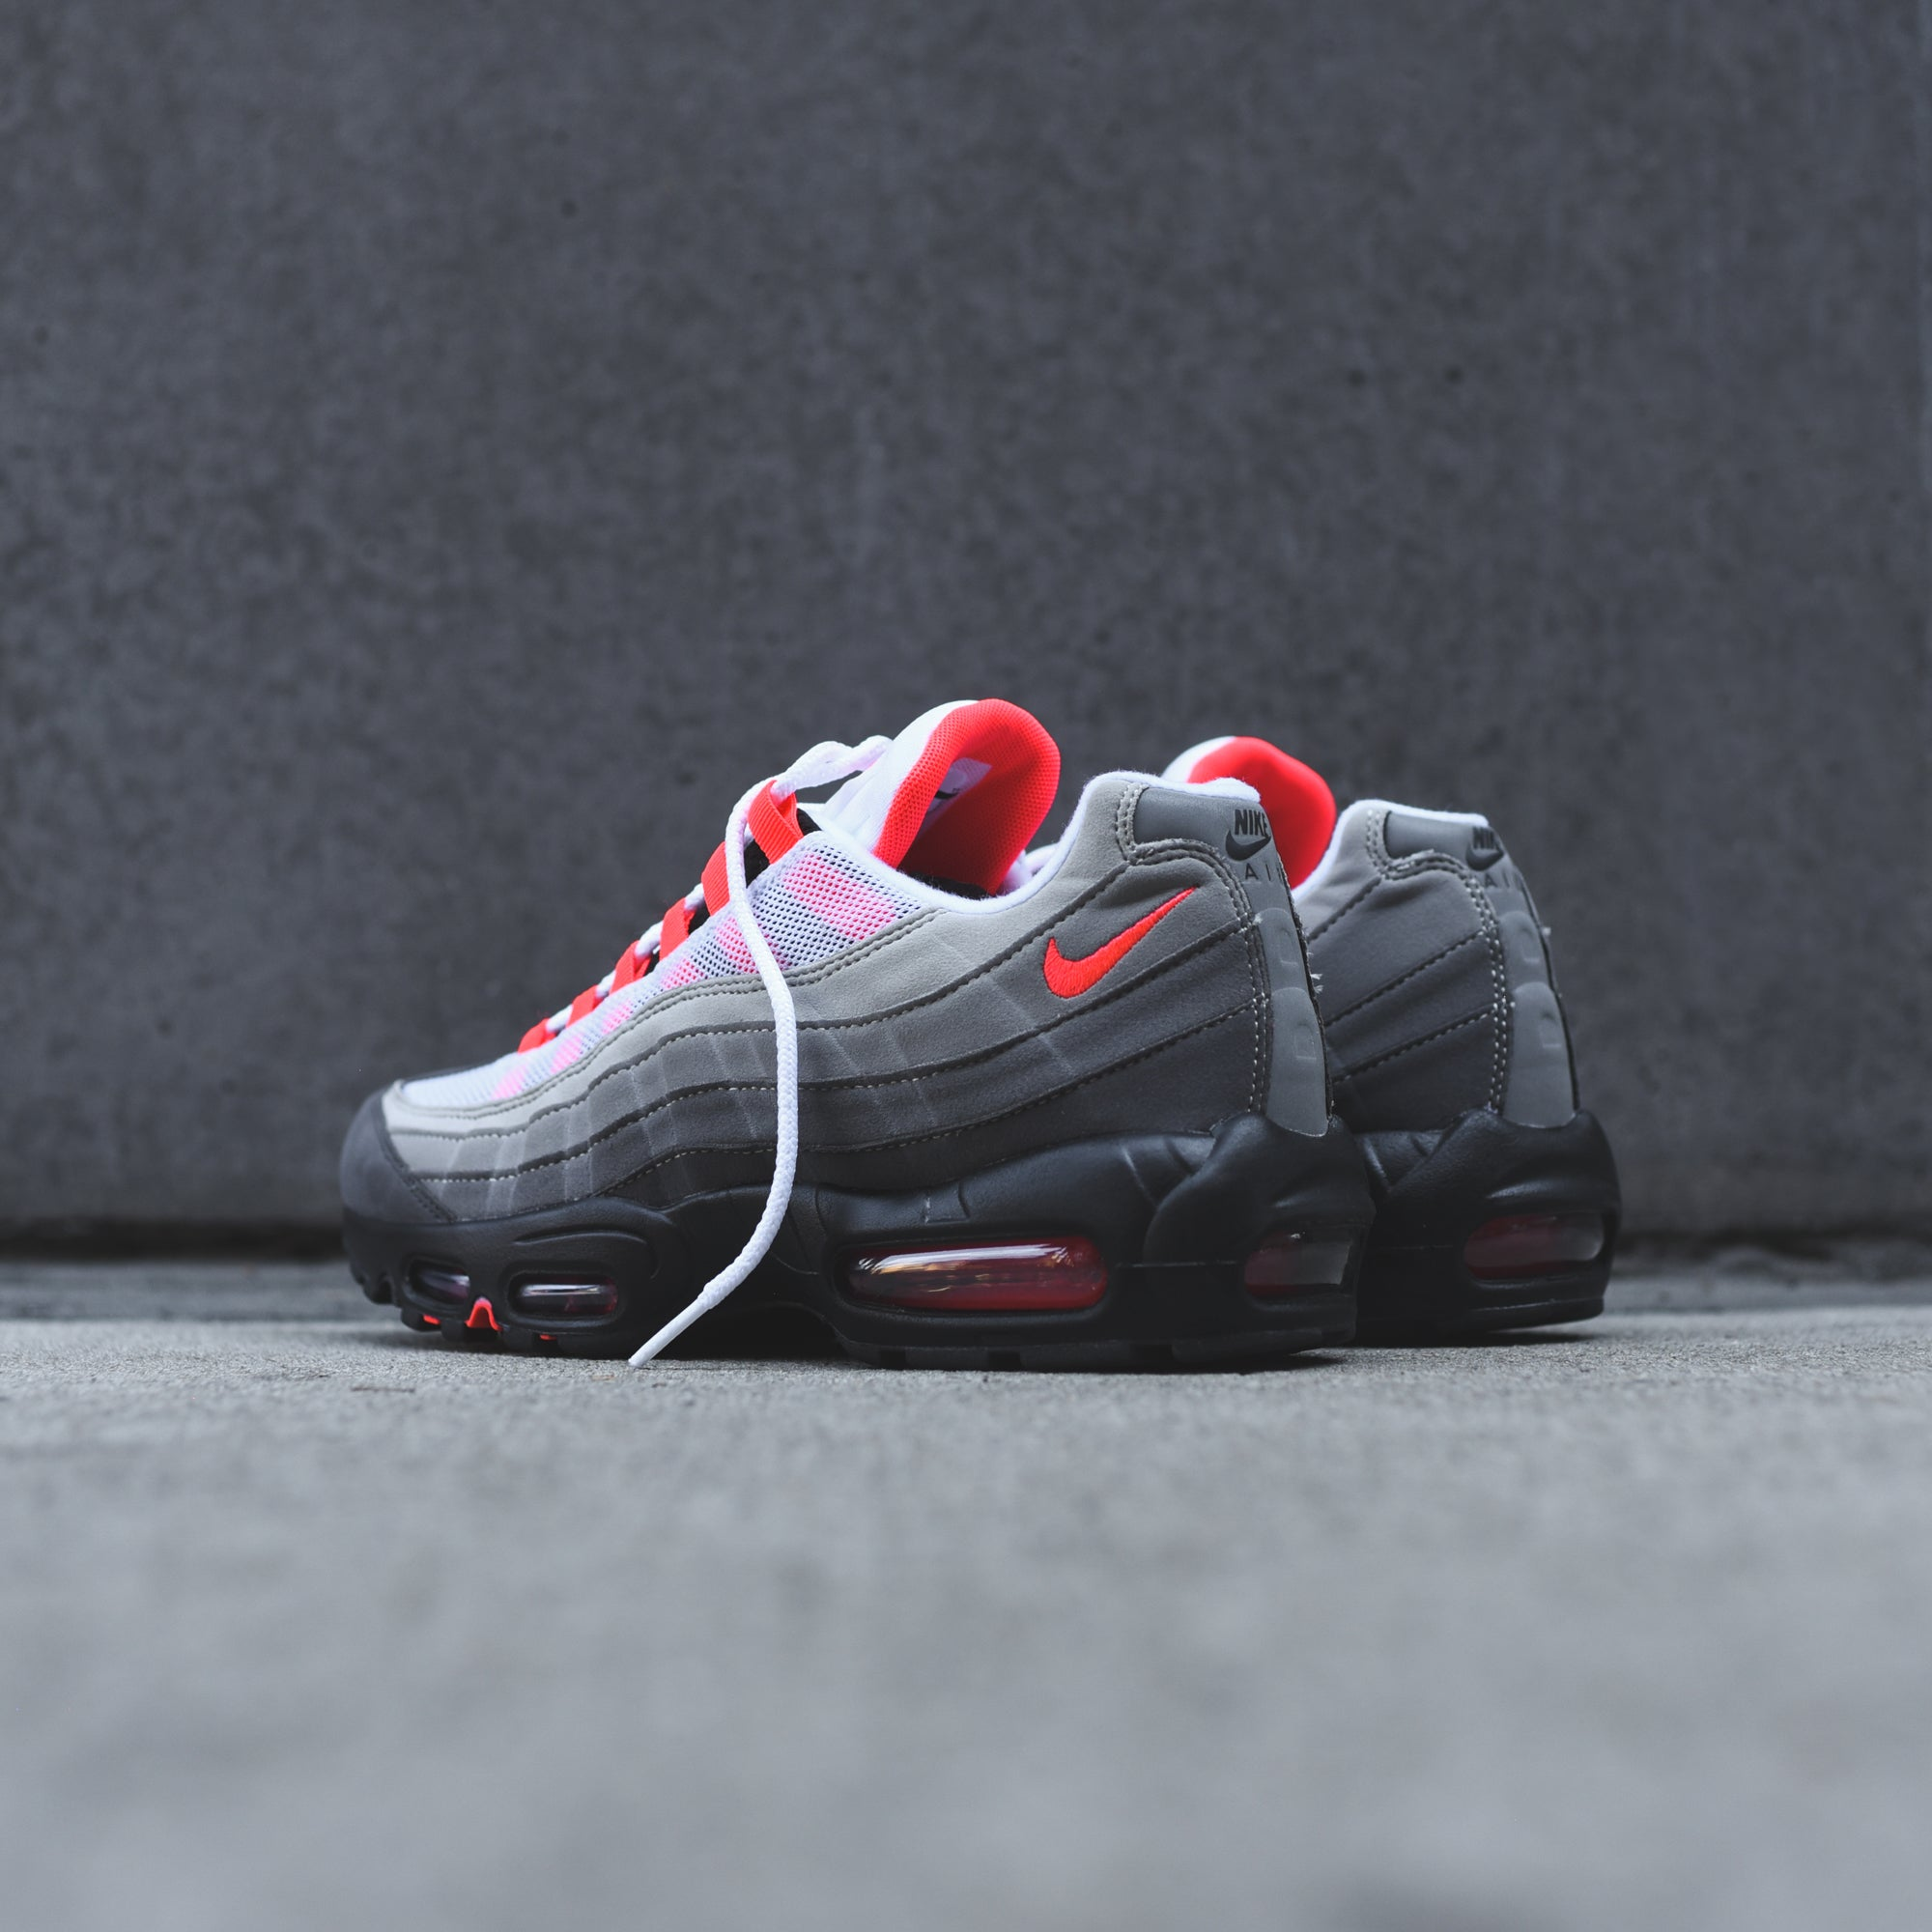 reputable site 4d623 61e44 Nike Air Max 95 OG - White / Solar Red – Kith